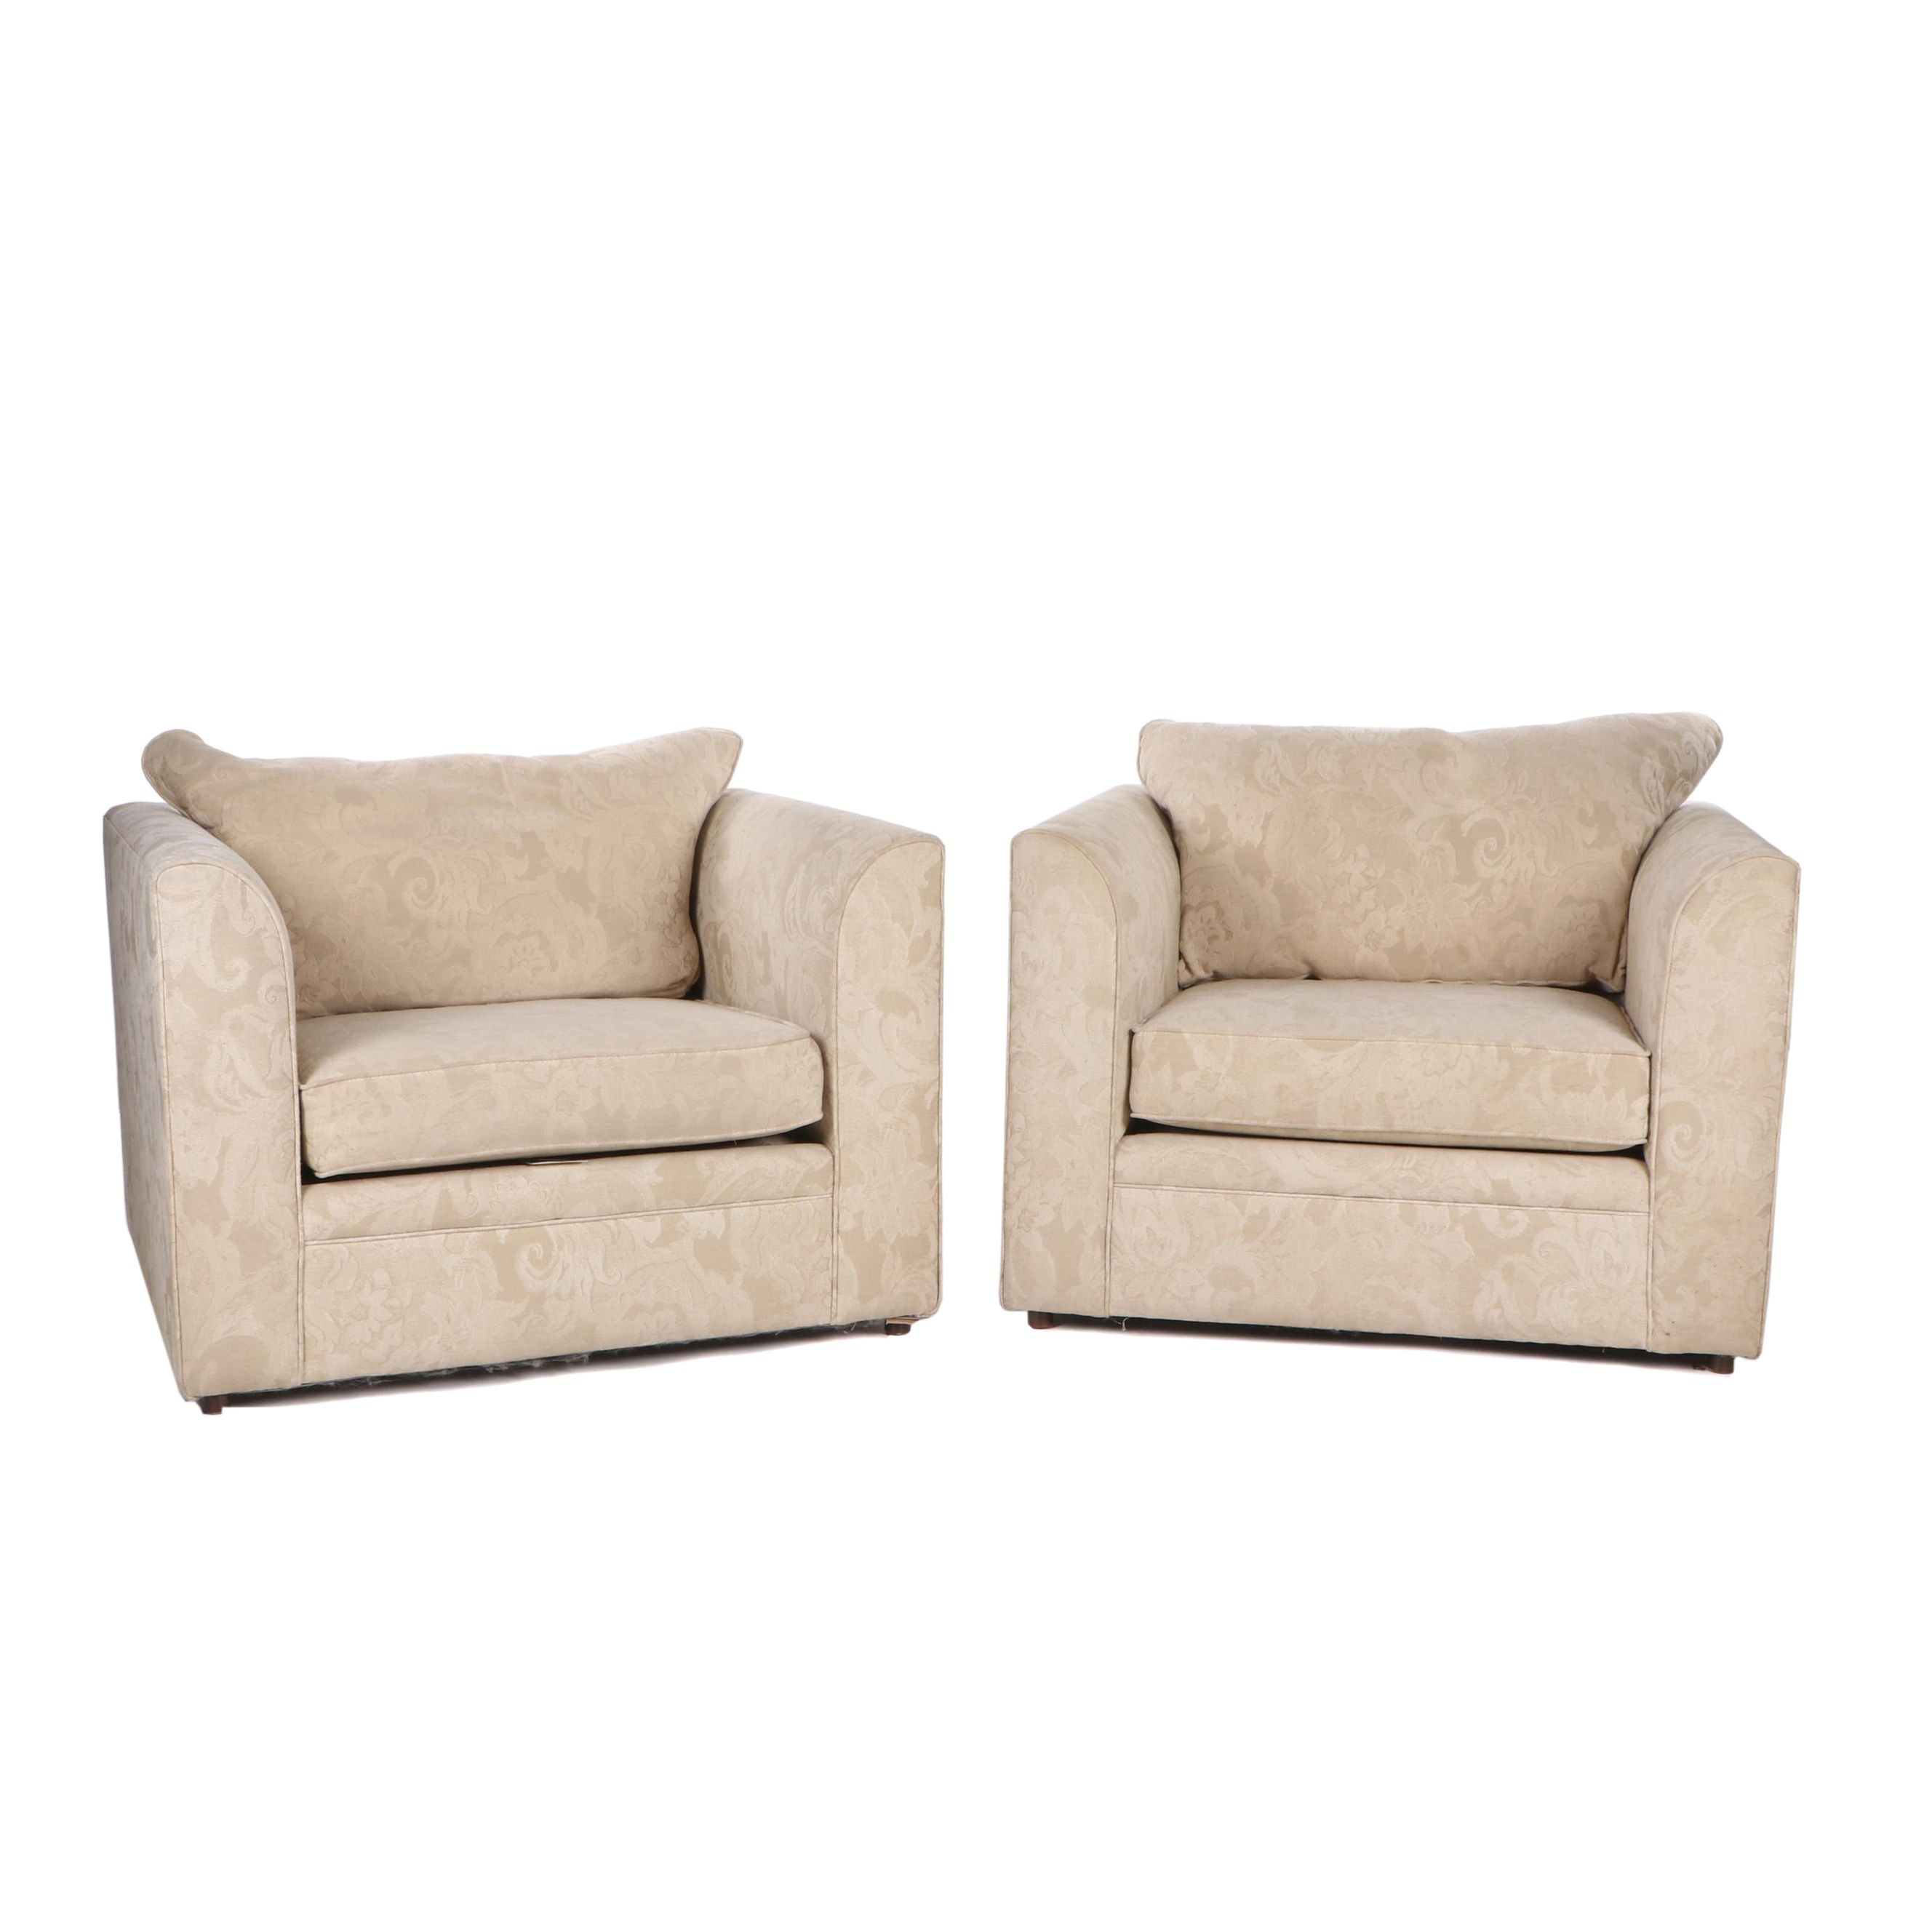 Contemporary Upholstered Lounge Chairs